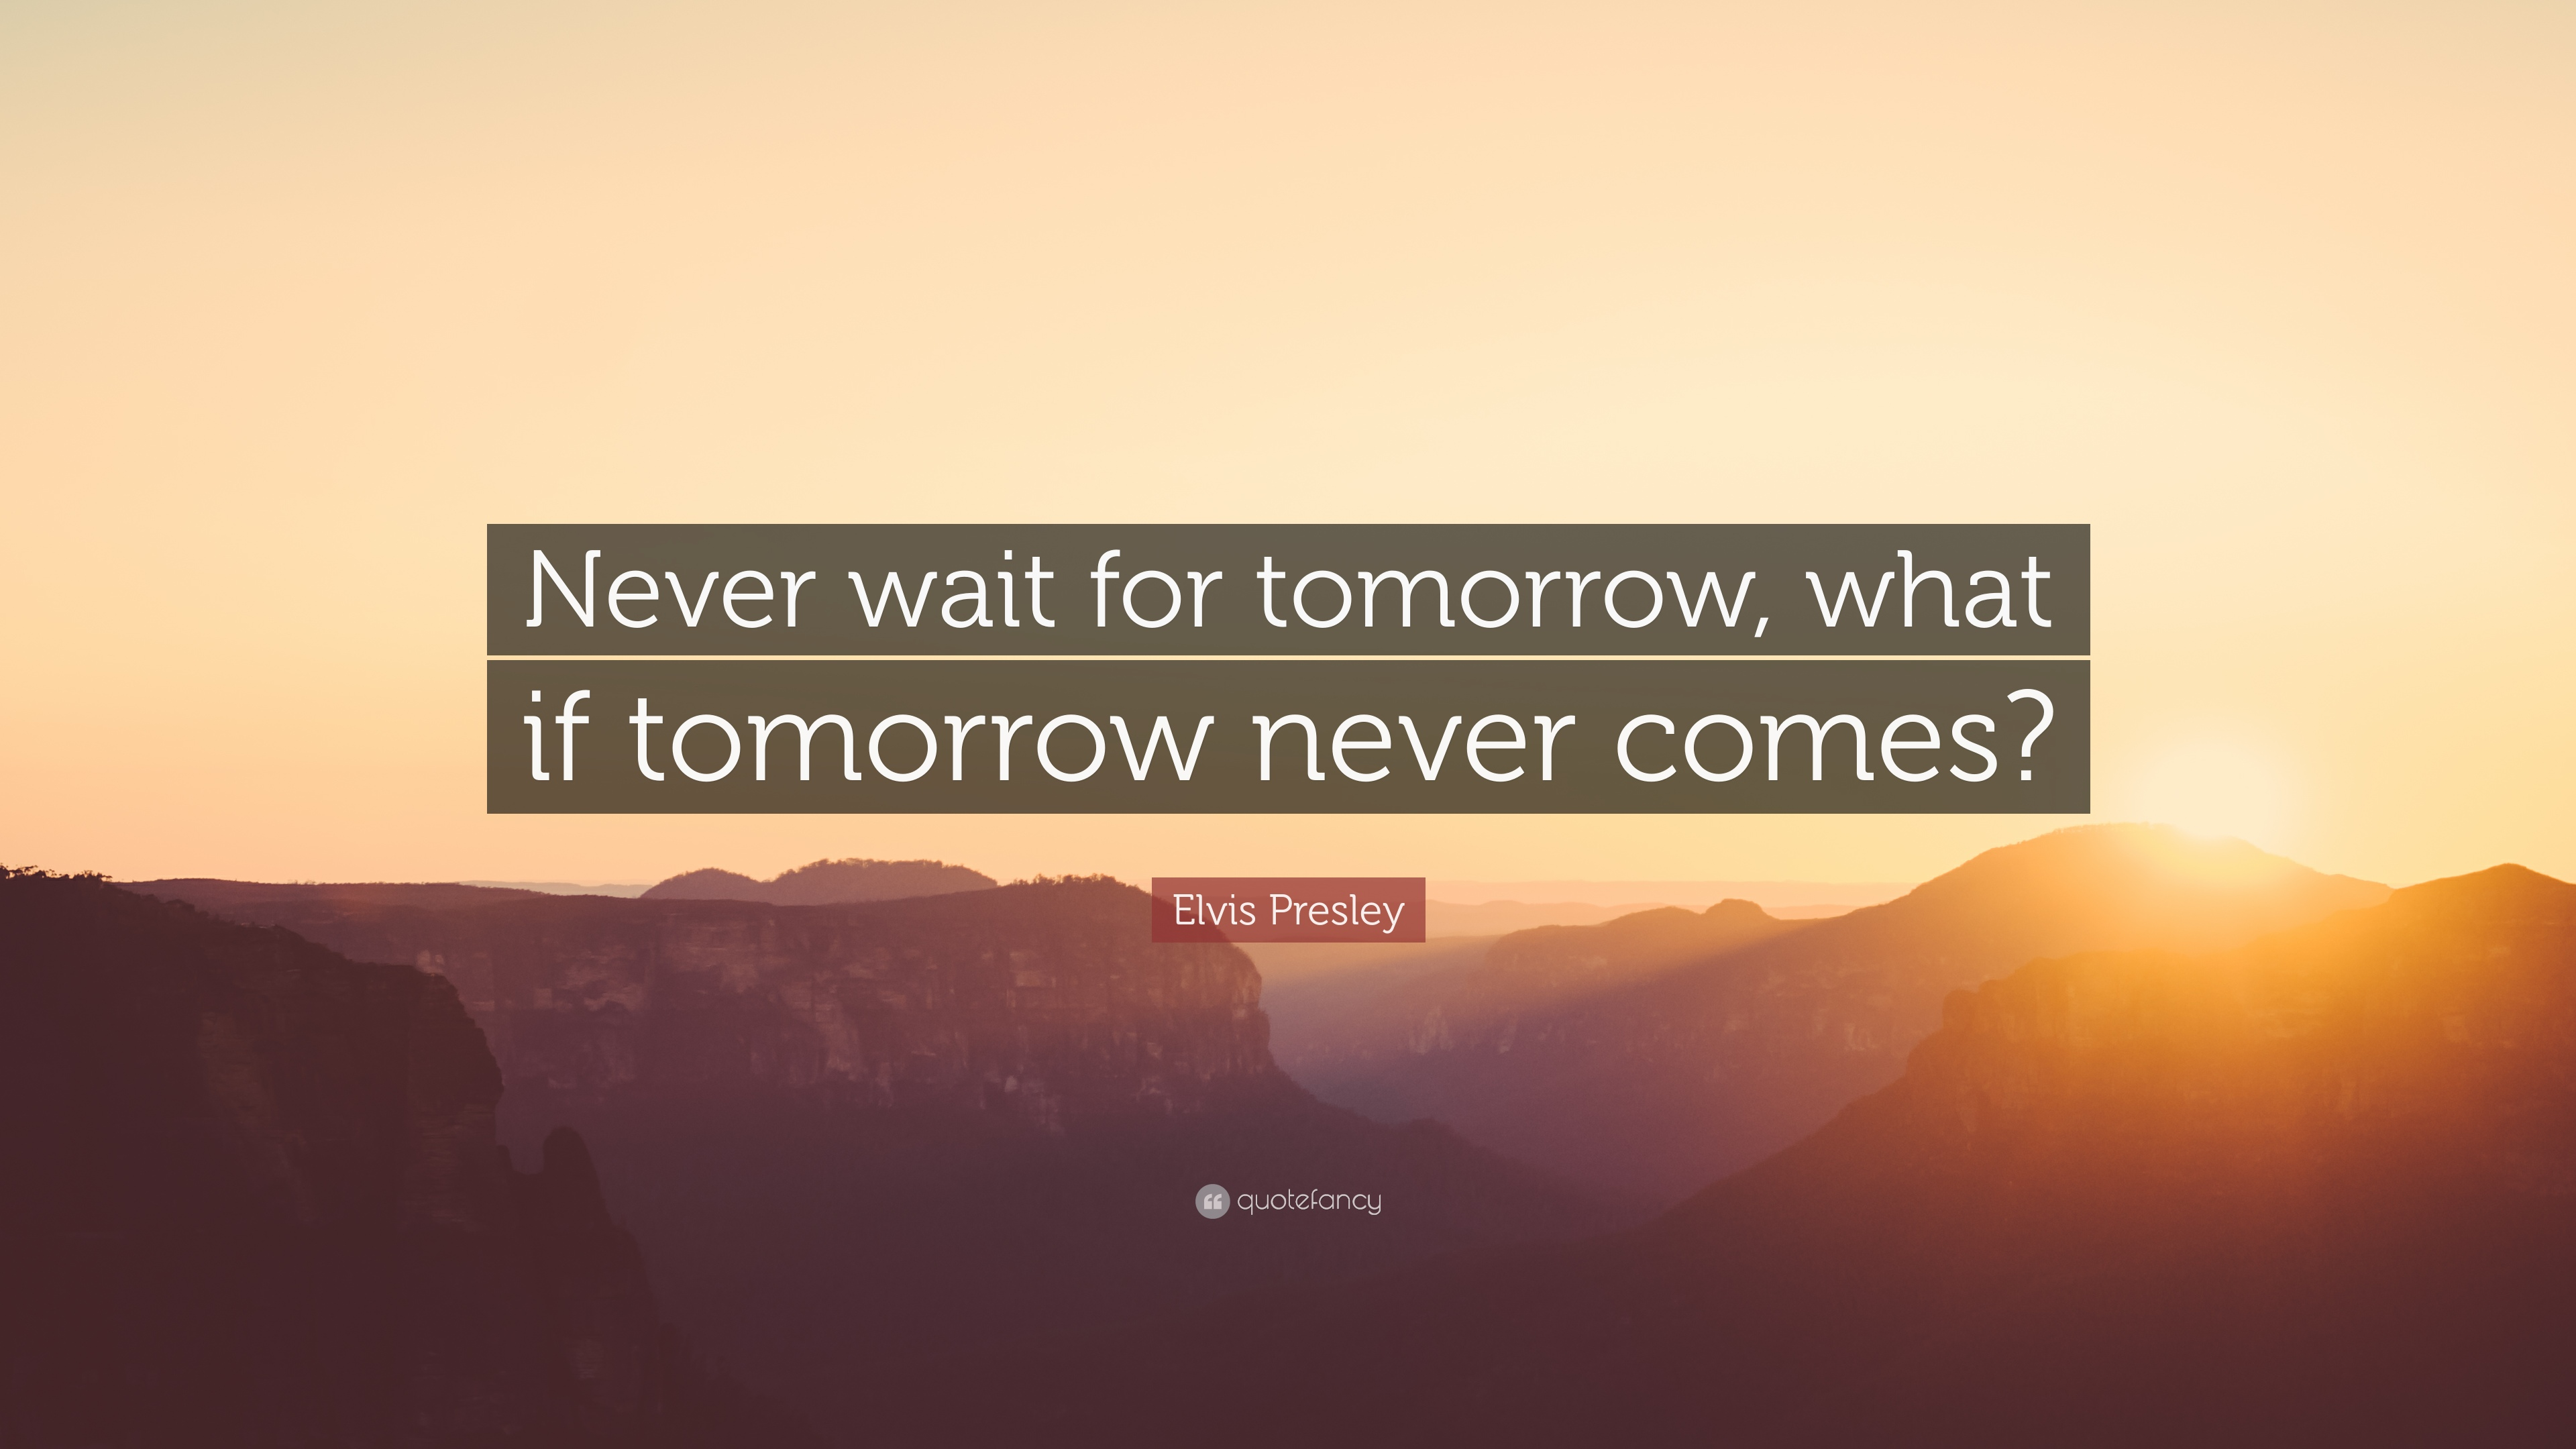 Quotes About Waiting 40 Wallpapers Quotefancy